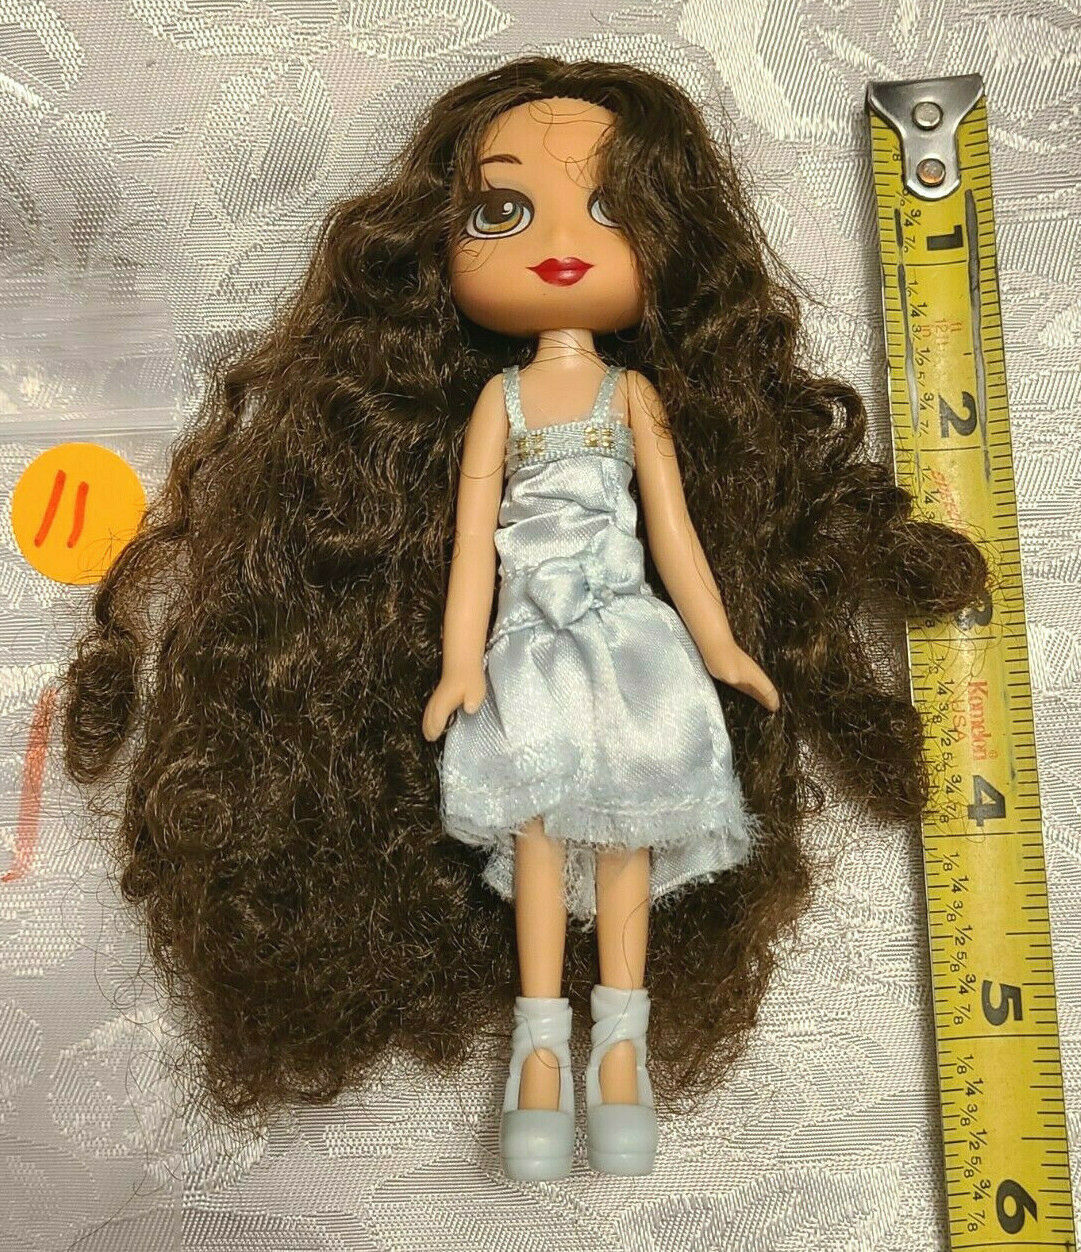 Bratz  Doll - Clothes Included as shown in Photo                    (BR11)